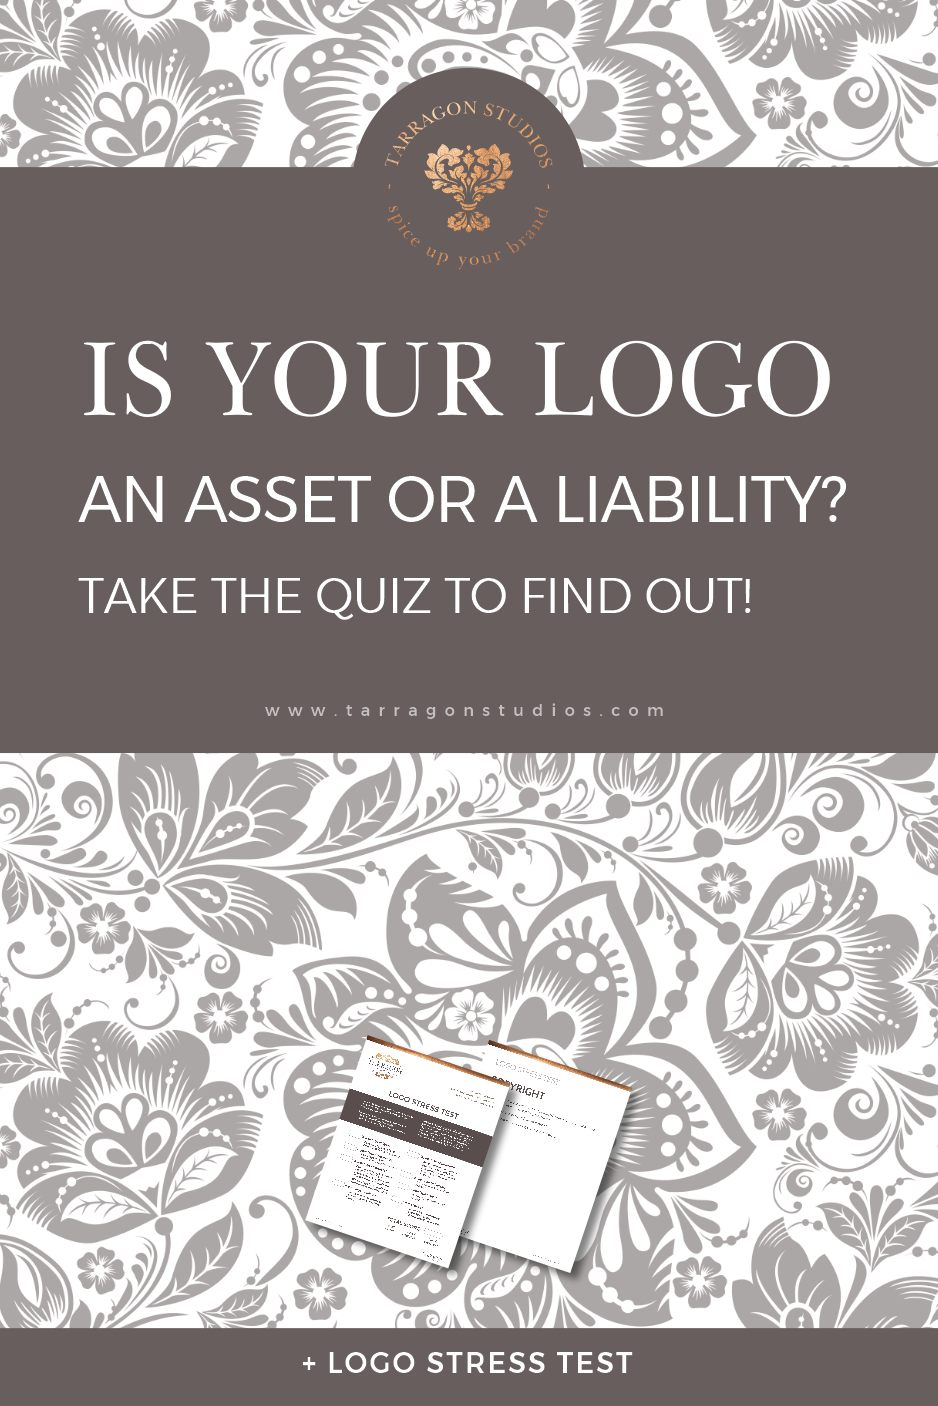 """The purpose of any """"good"""" logo is to communicate who you are to your audience at a glance. A good logo is an essential asset to your business, while a bad one can be the exact opposite. Is it time for a re-brand? Take the Logo Stress test here to find out! #logo #branding #rebrand #smallbusiness"""